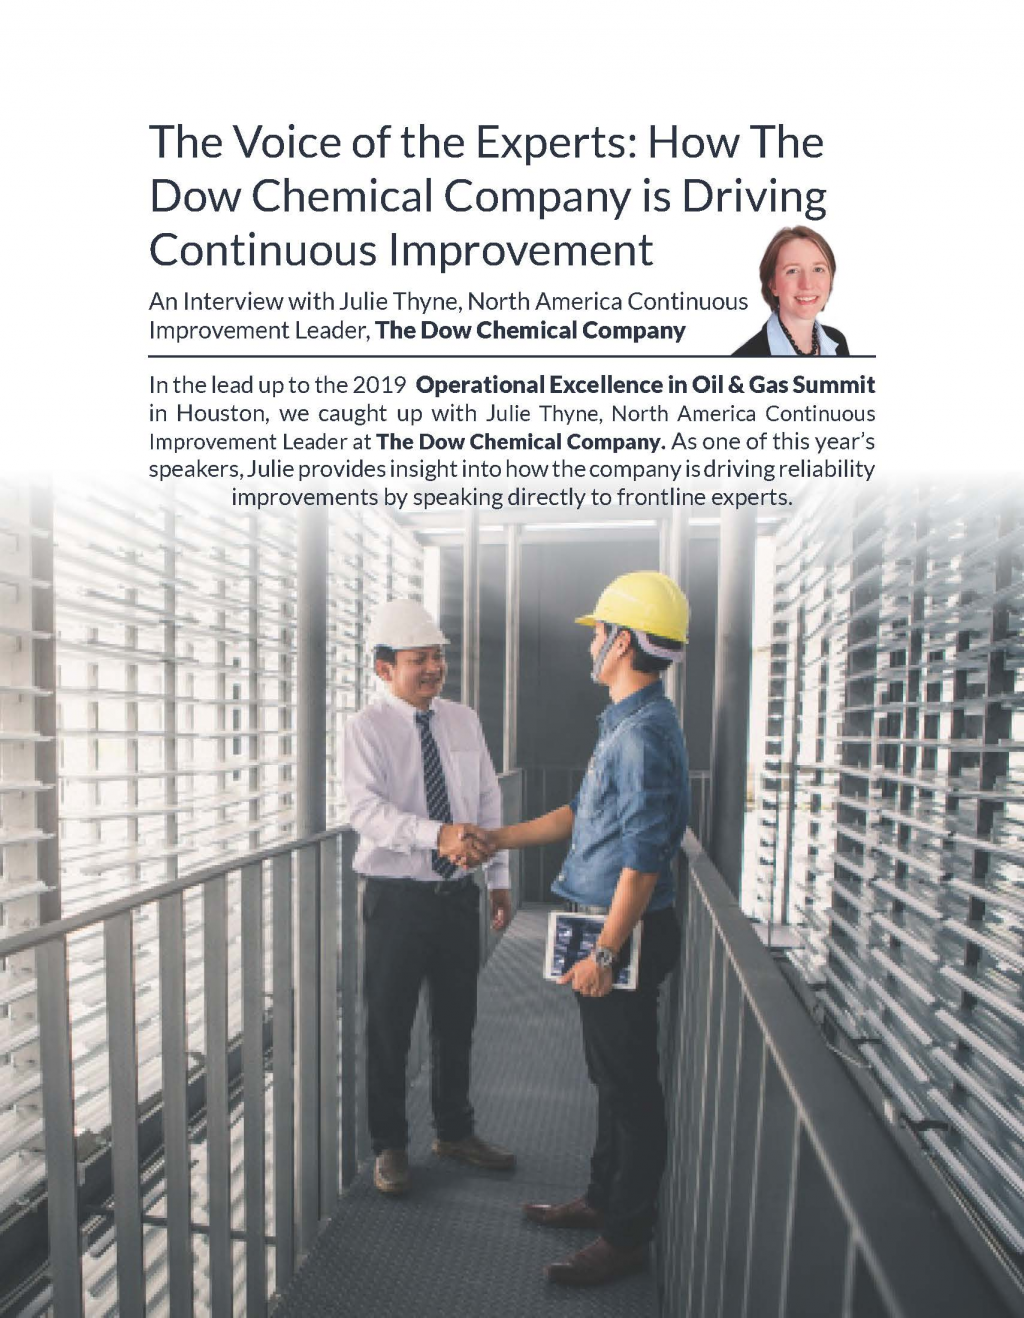 The Voice of the Experts: How The Dow Chemical Company is Driving Continuous Improvement